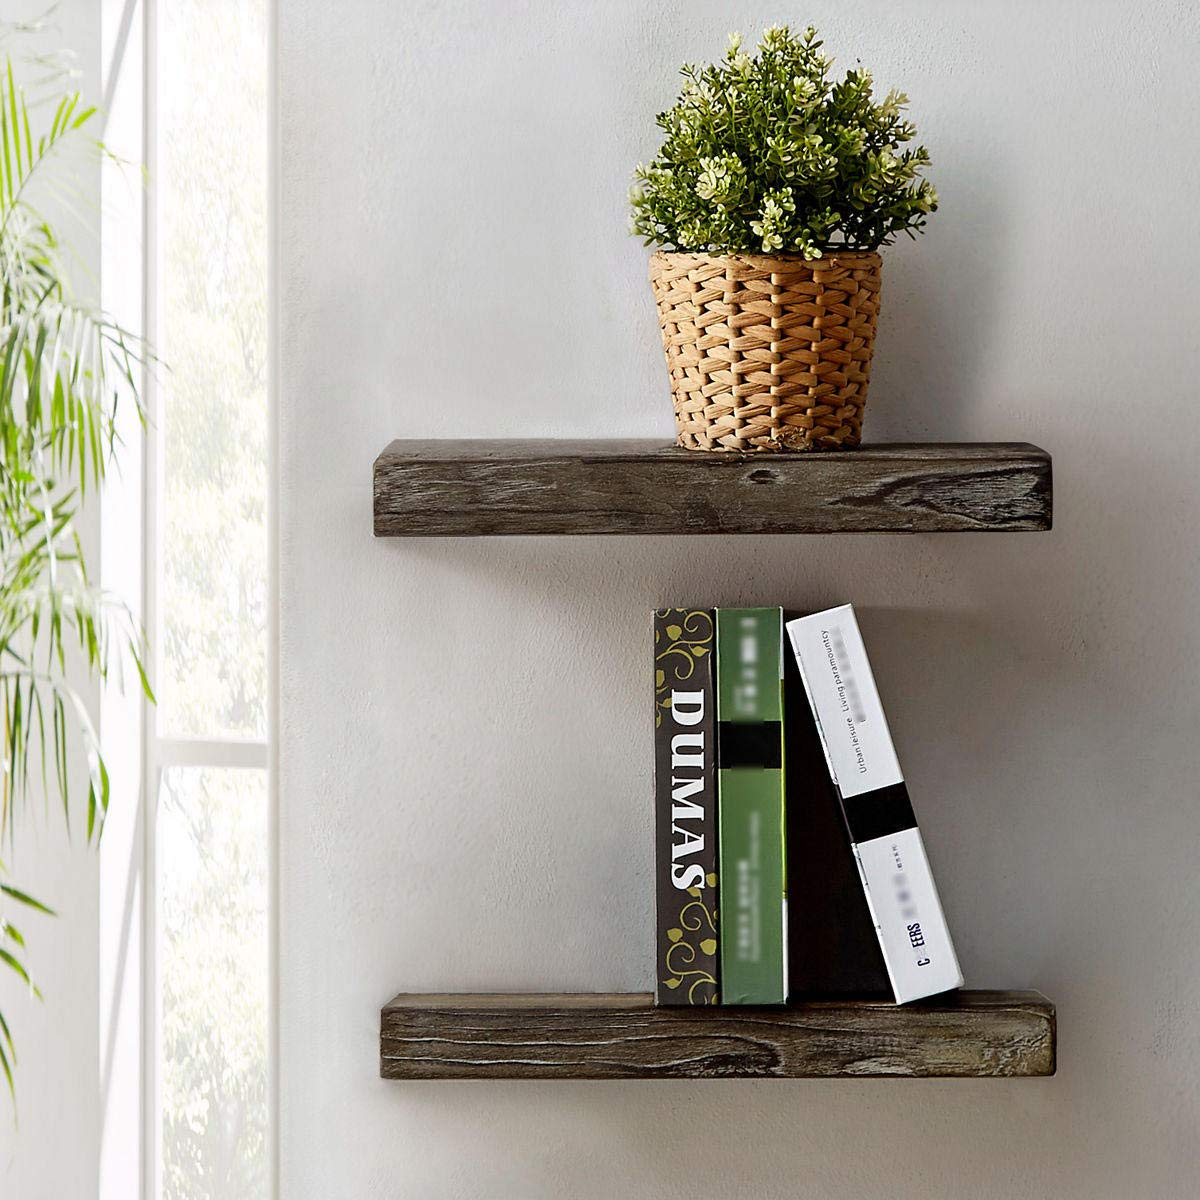 HSH Rugged Reclaimed Solid Wood Wall Shelf, Rustic Farmhouse Floating Shelf, Vintage Industrial Mount Wooden Shelving, Natural Pine, 18 x 7.1 Inch, Set of 2